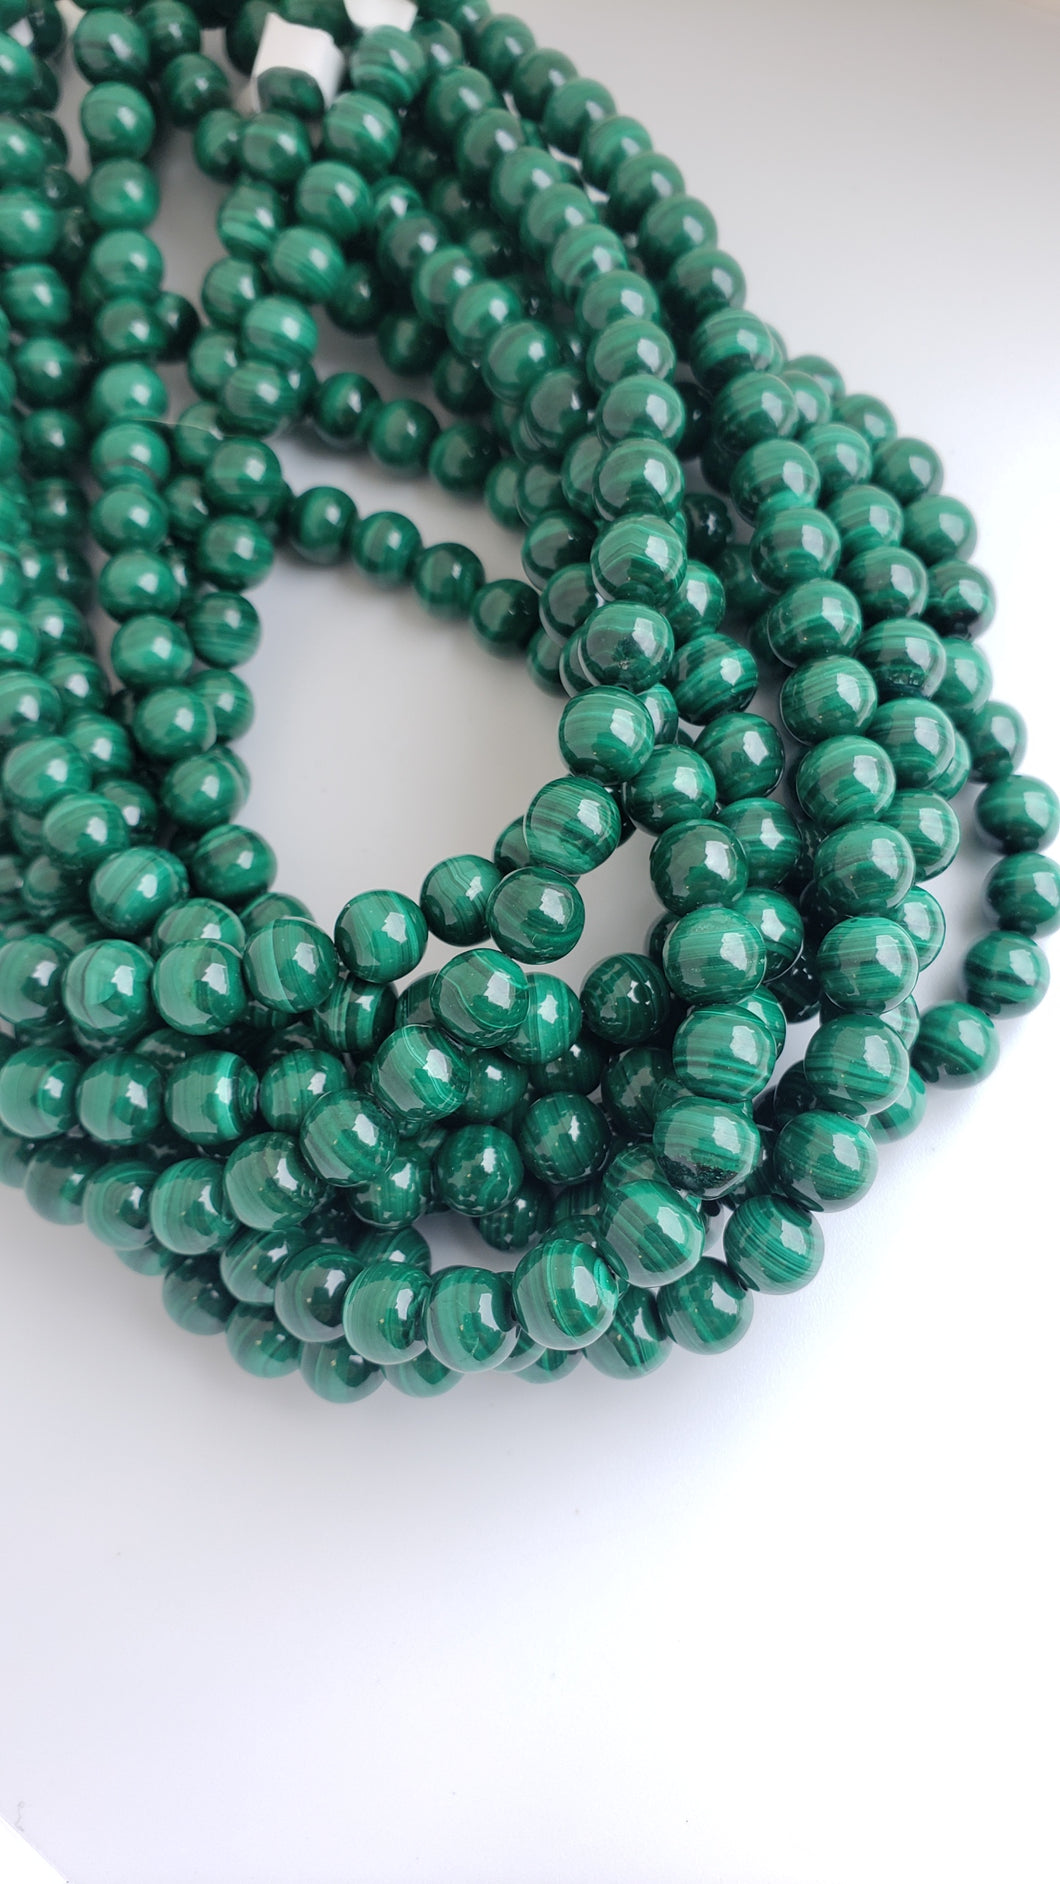 8mm Malachite Gemstone Bead Strand 16